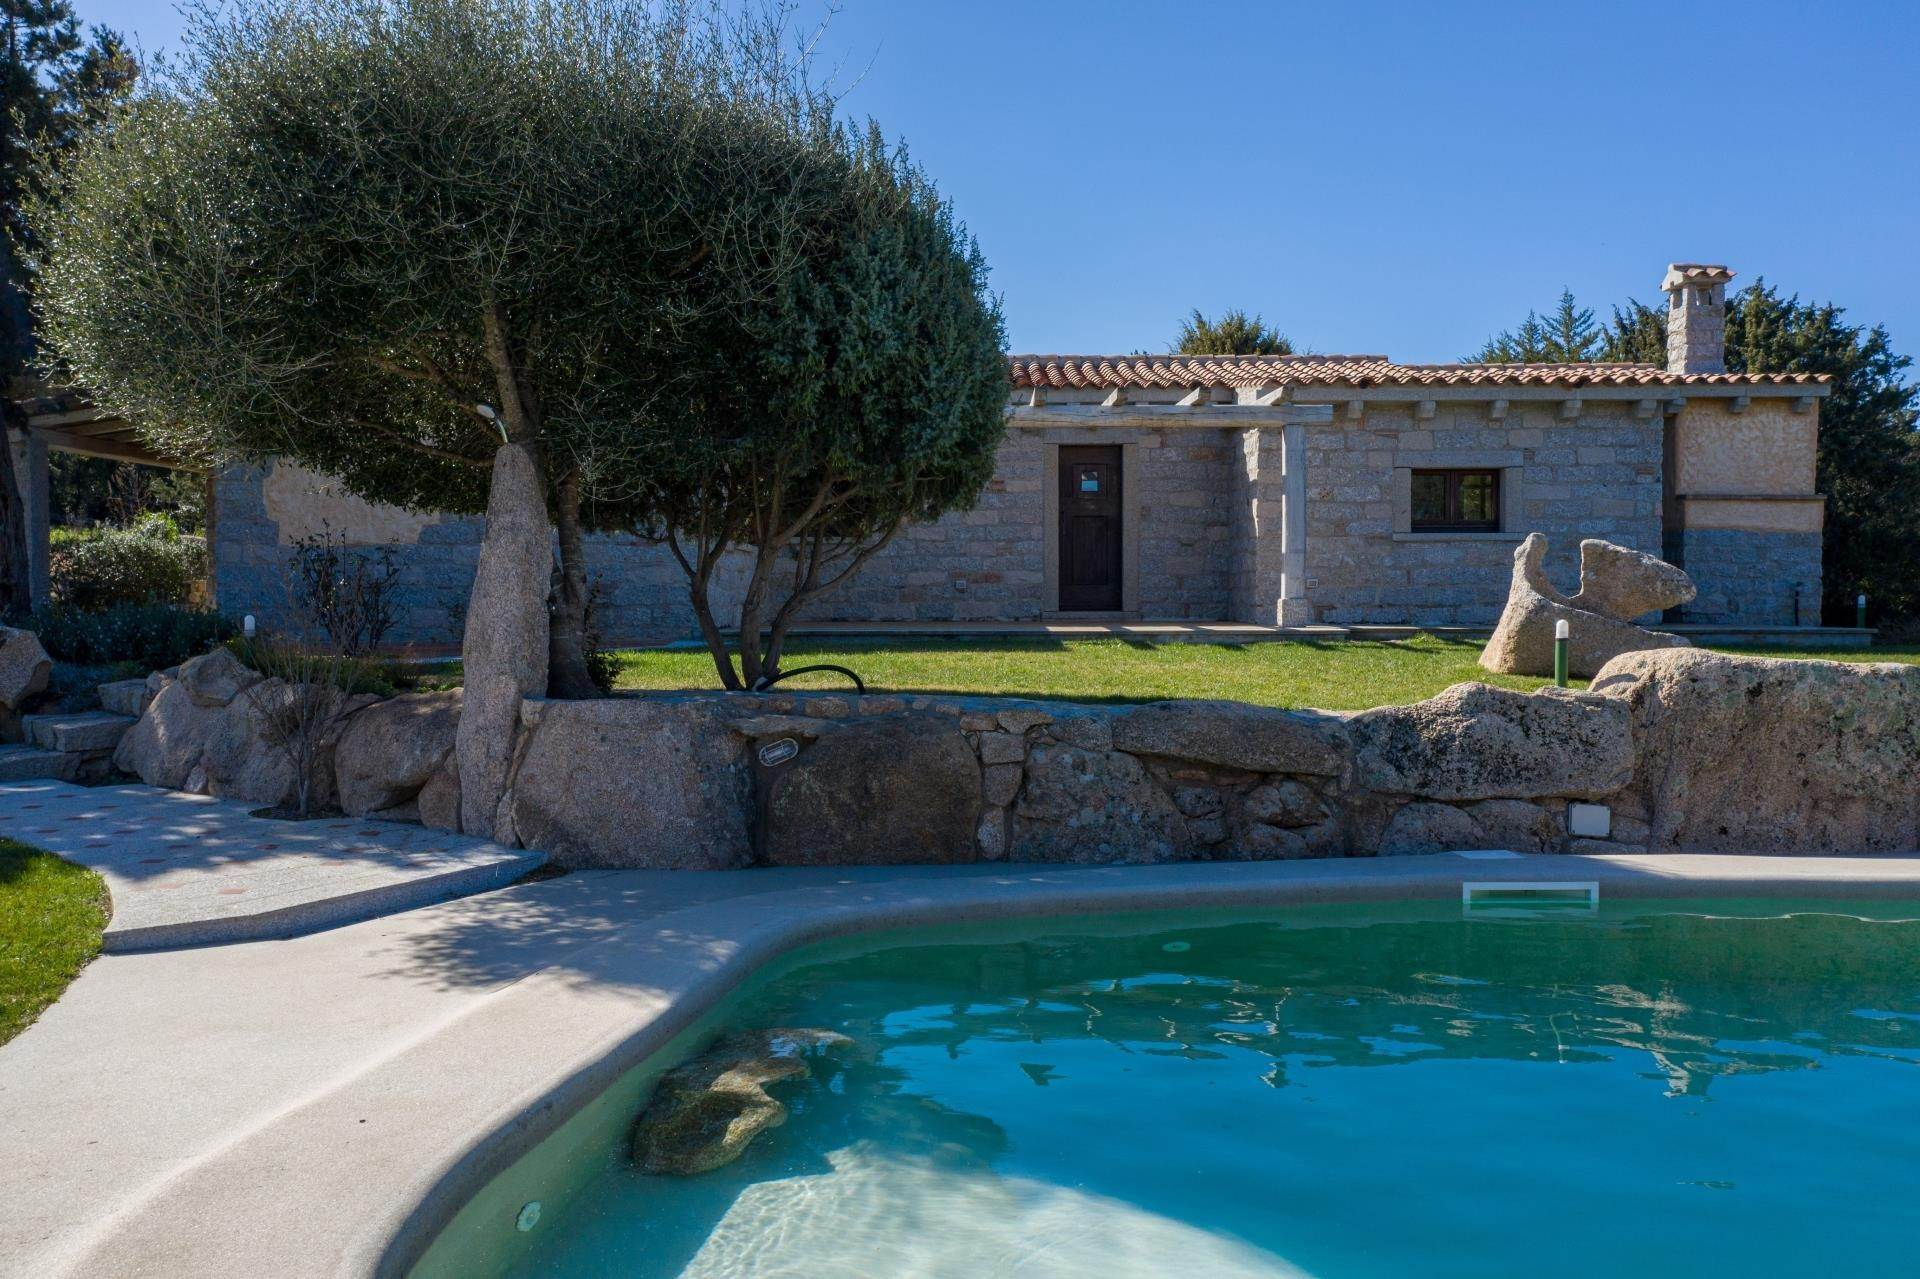 2. Villa/Townhouse for Rent at Country Villa with Pool for rent Costa Smeralda, Olbia Tempio,07021 Italy